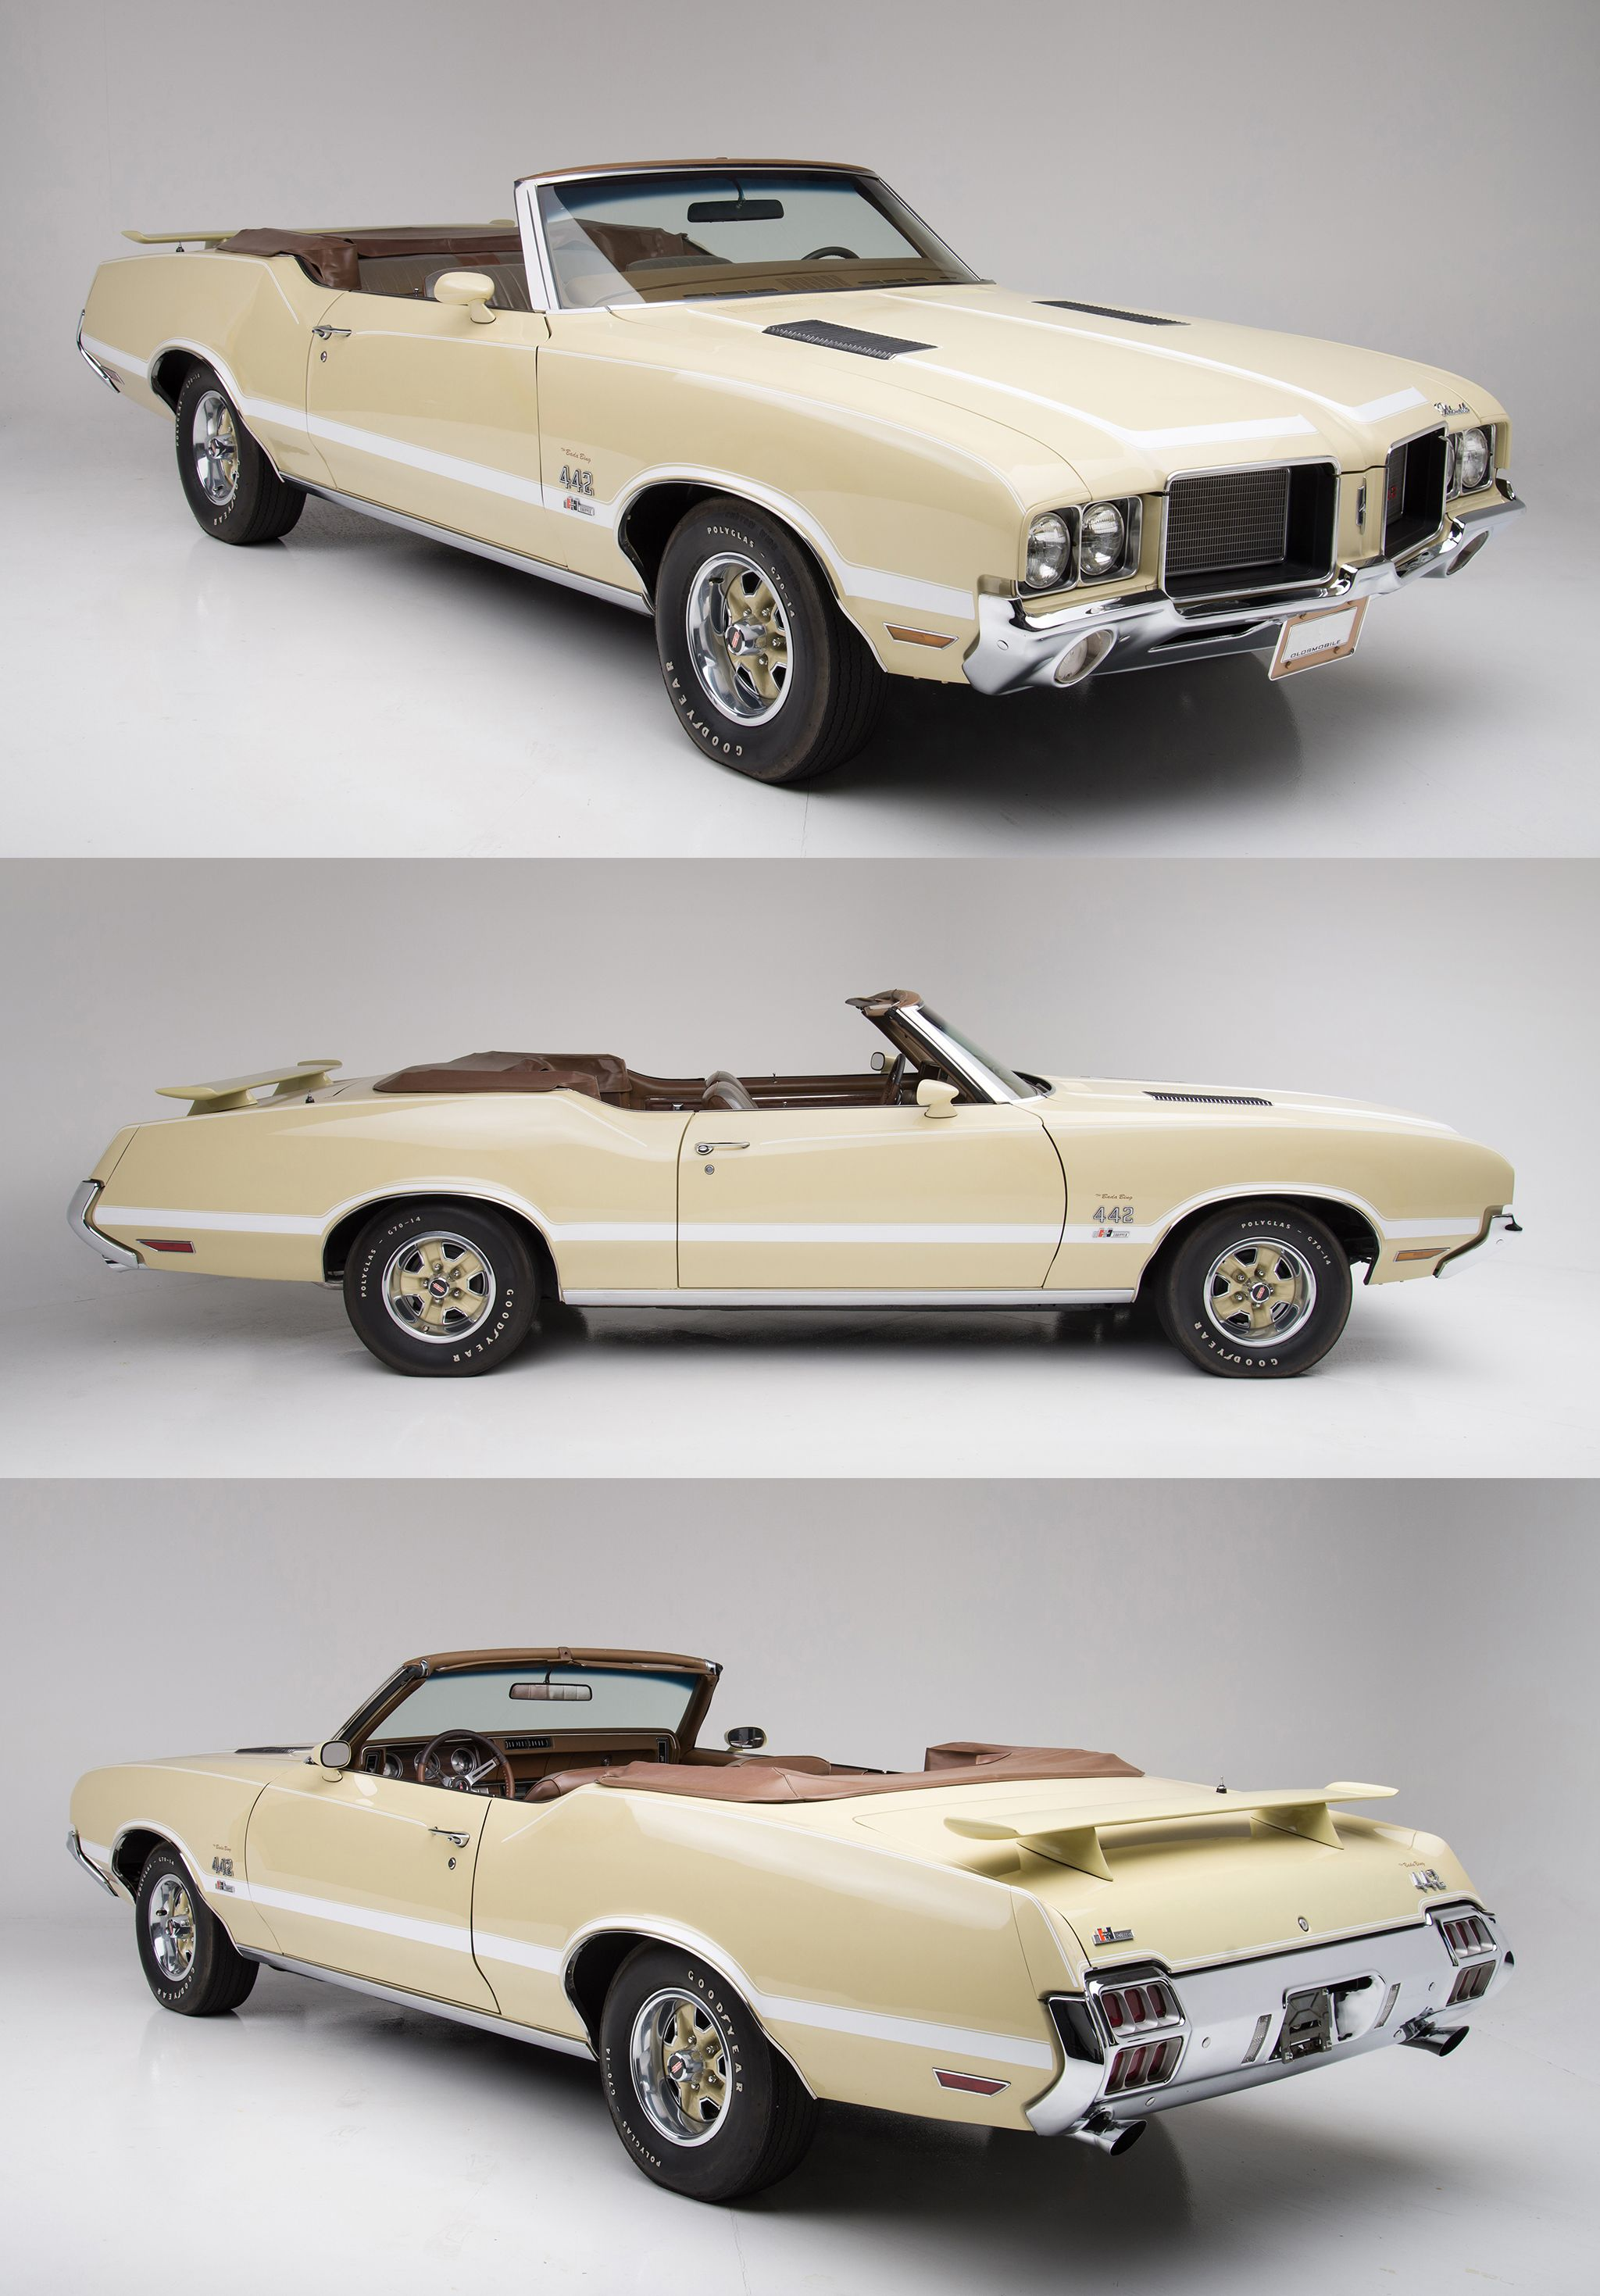 Purchase used 1970 oldsmobile cutlass w31 post coupe 1 of 116 built - 1972 Oldsmobile Cutlass 442 Supreme Hurst Convertible Jpm Entertainment